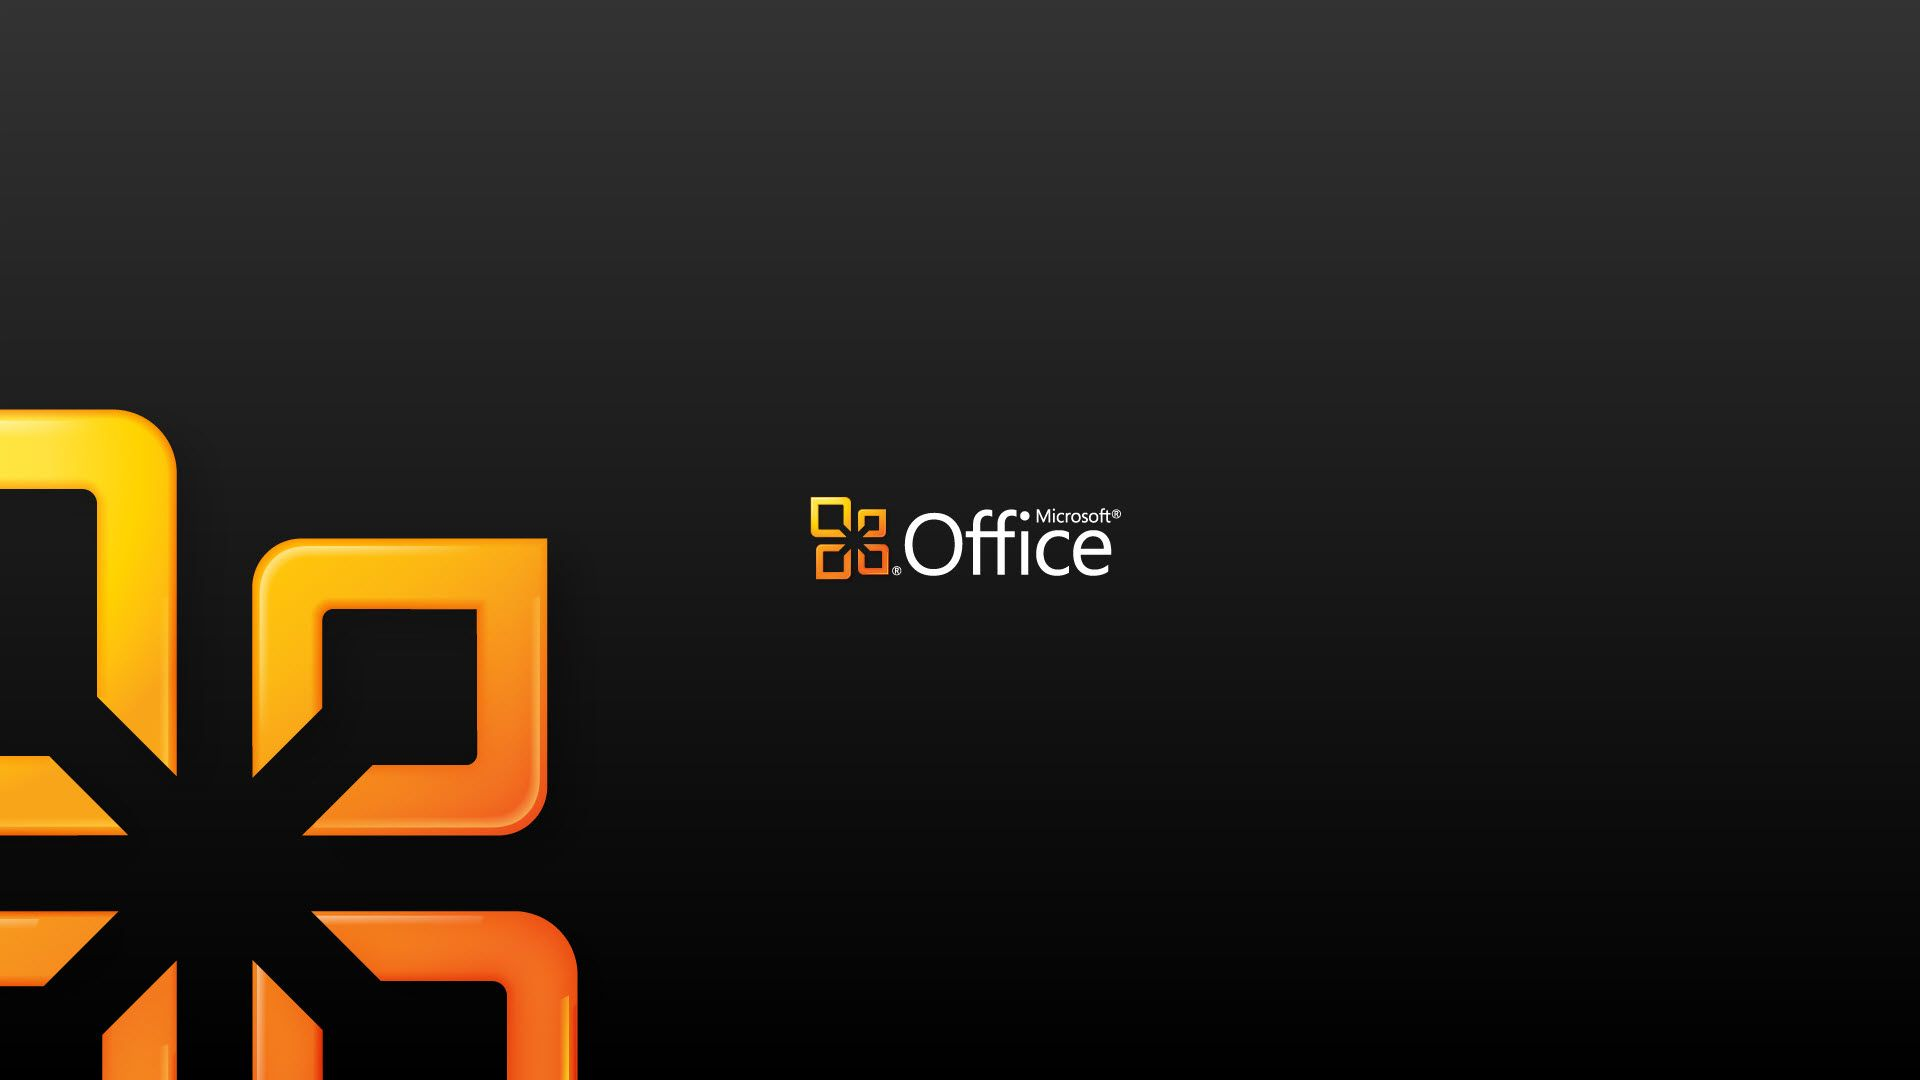 Microsoft Office Wallpapers Yeterwpartco